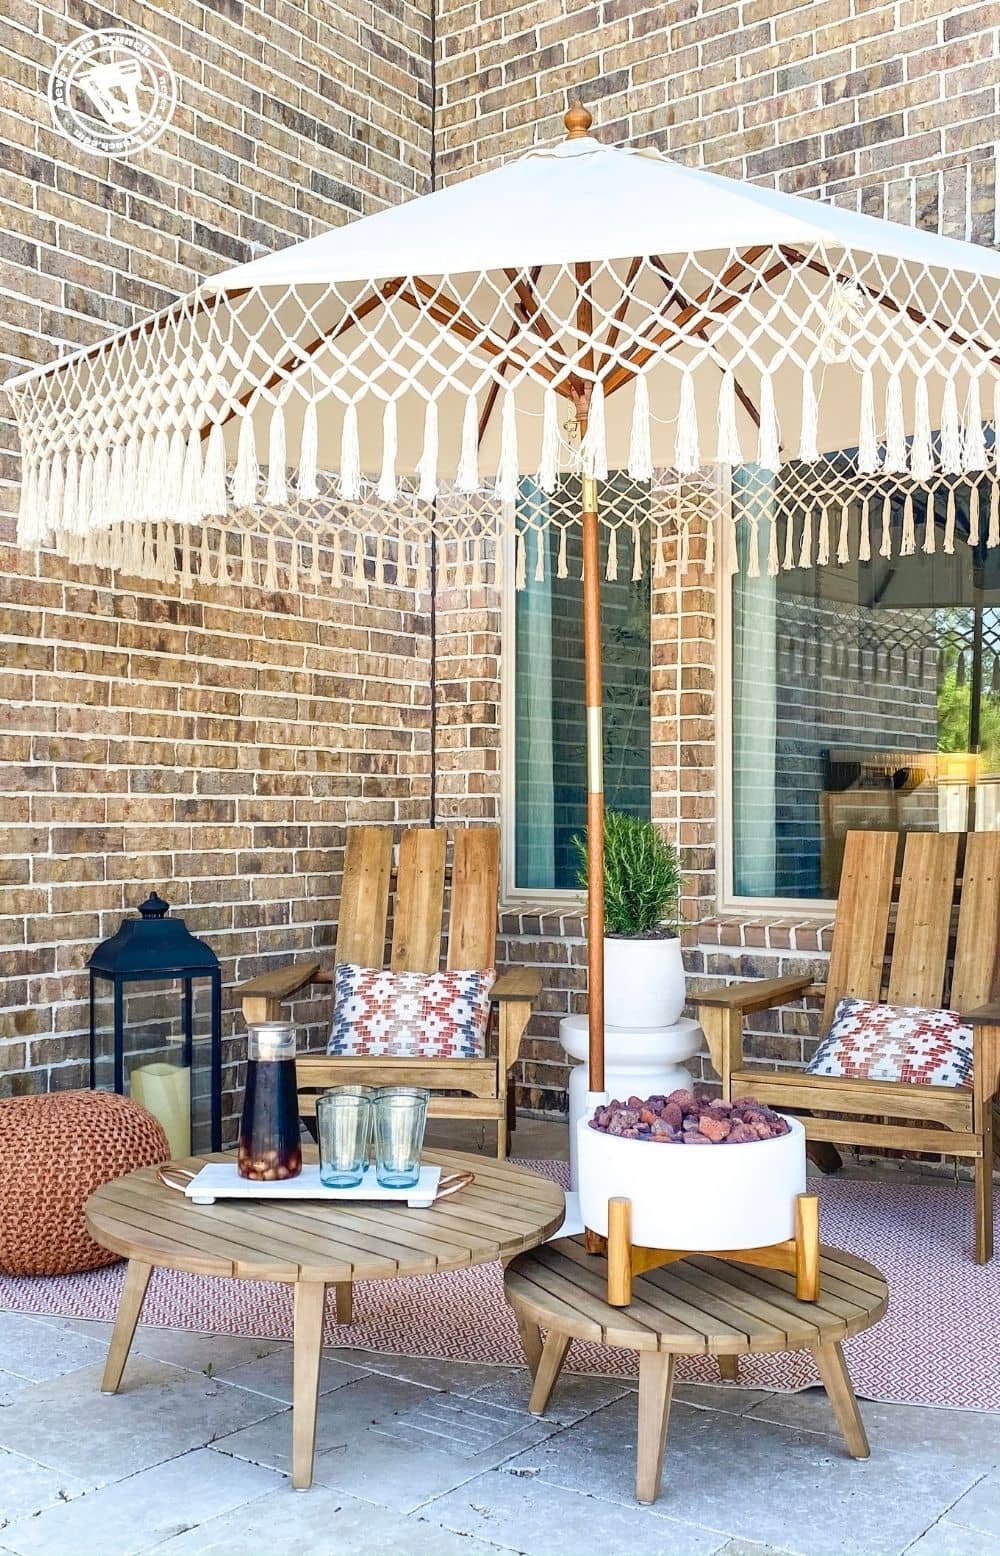 diy patio makeover before and after featured by top US home blogger, Never Skip Brunch